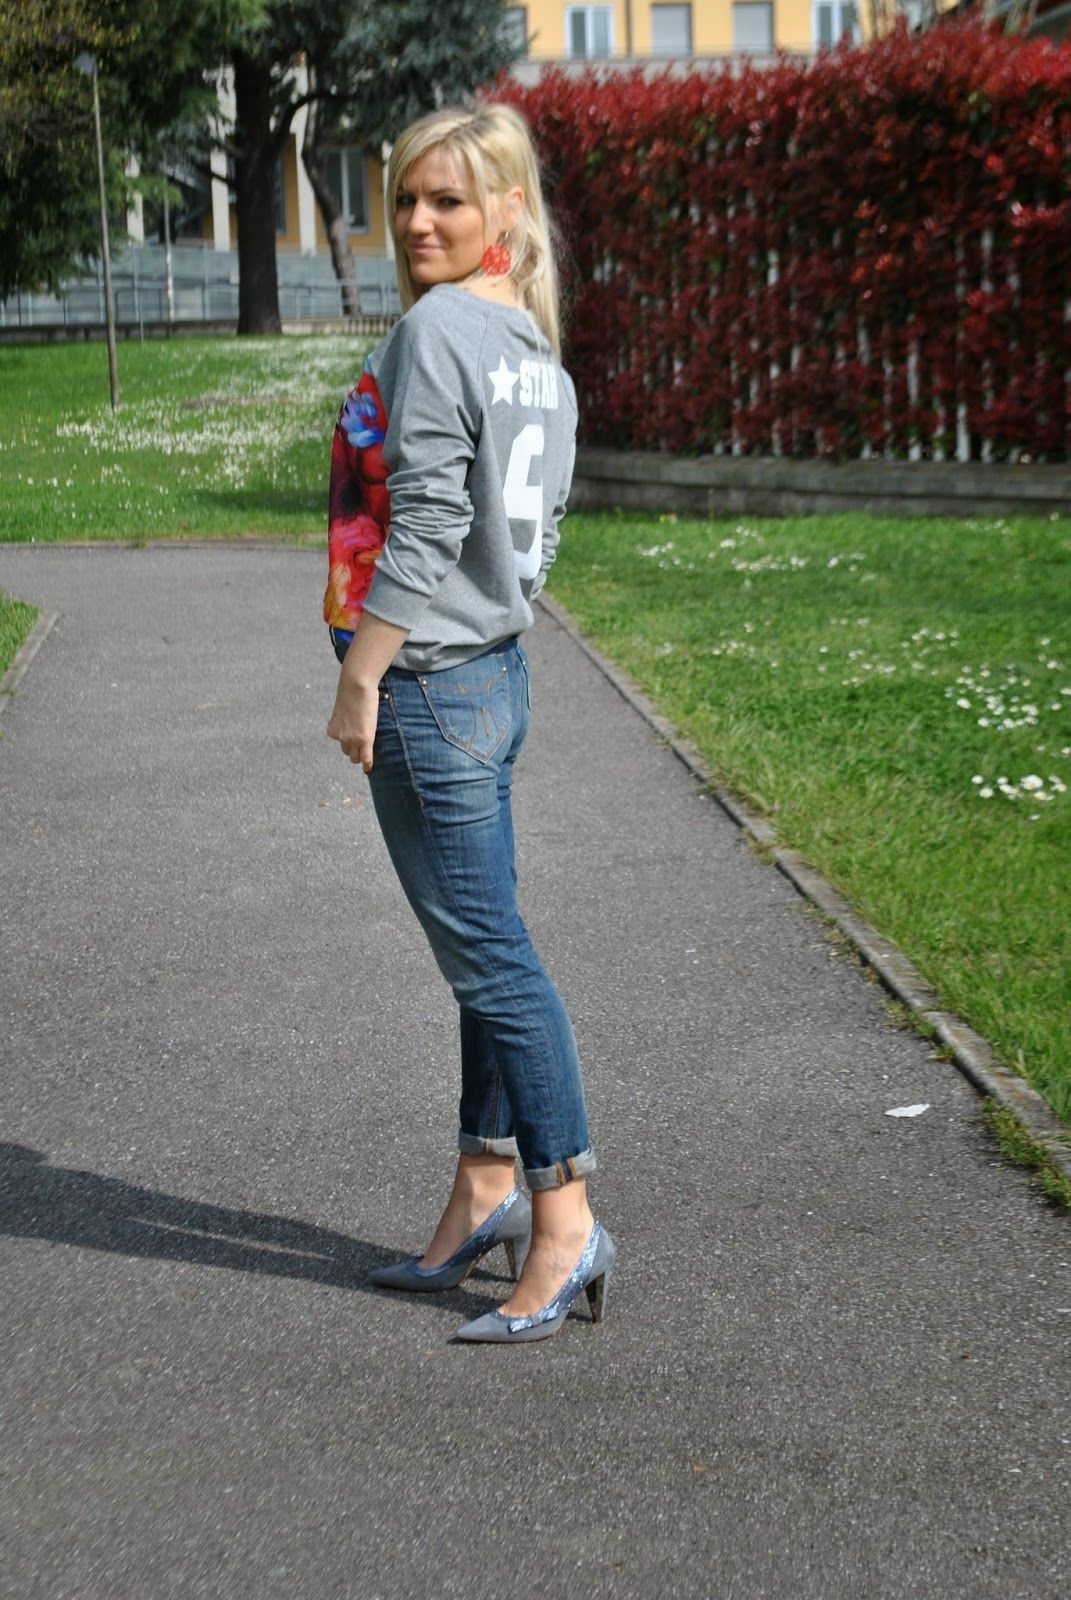 Color-Block By FelyM.: HIGH WAIST JEANS AND SWEATSHIRT